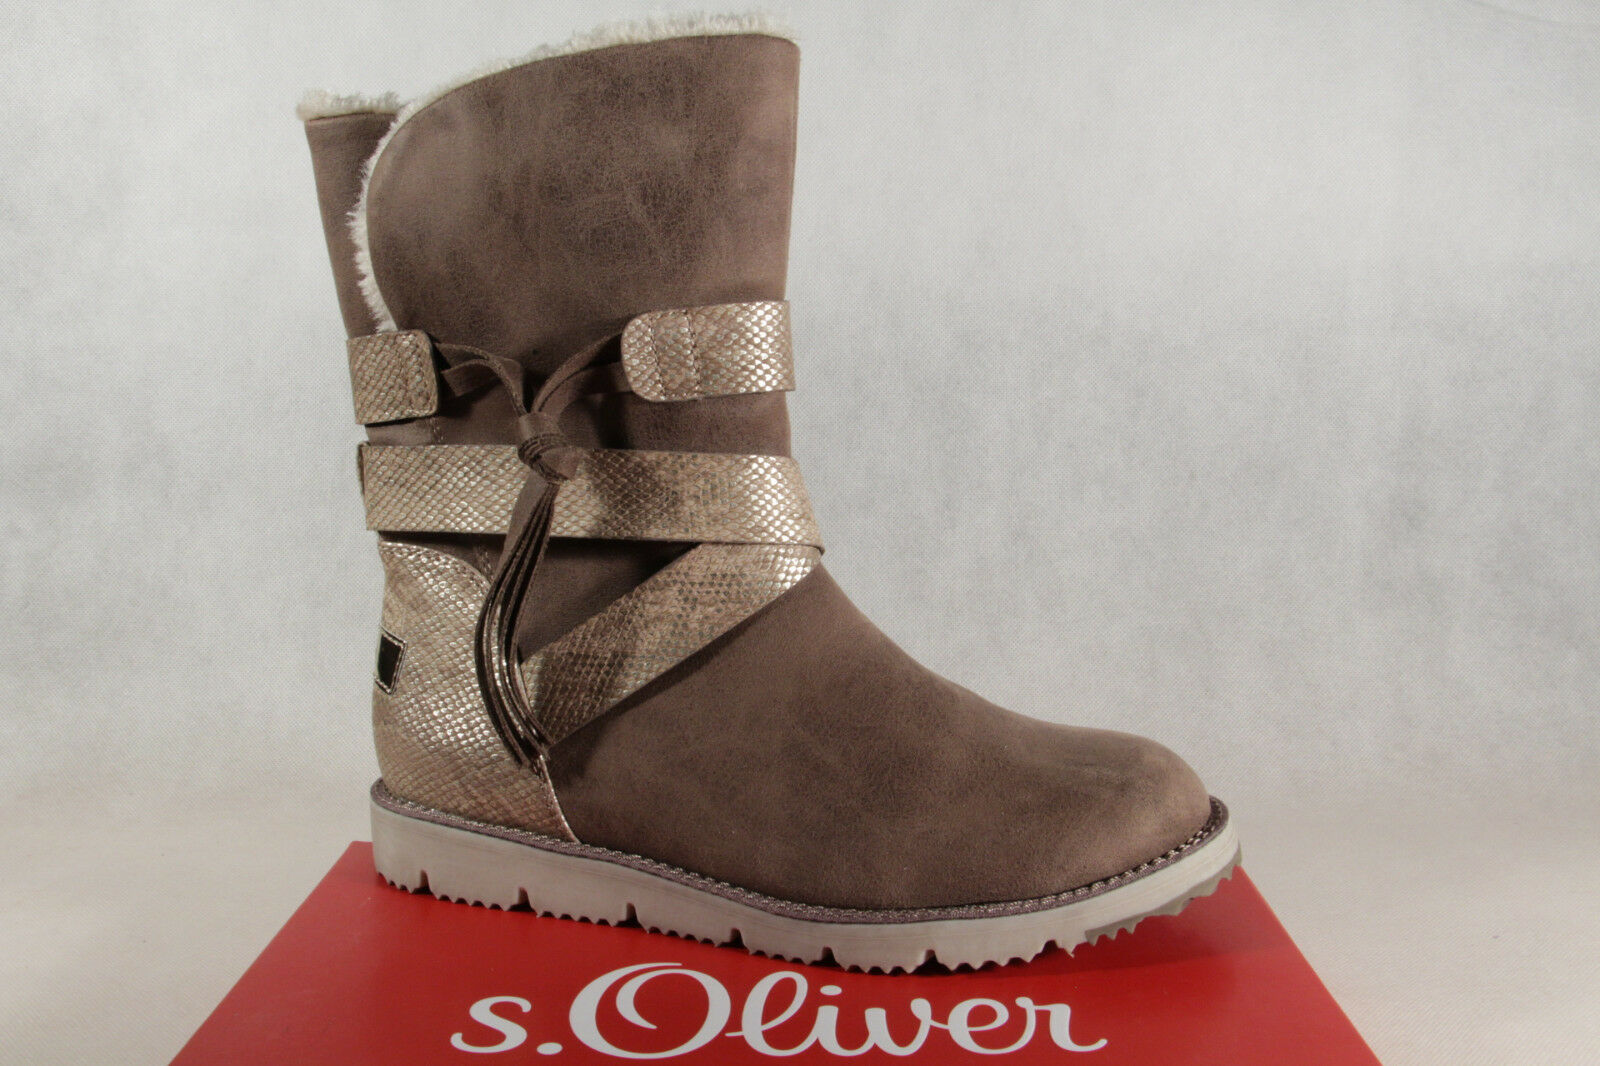 S.Oliver Women's Ankle Boots Winter Boots Cigar / Grey 26481 NEW